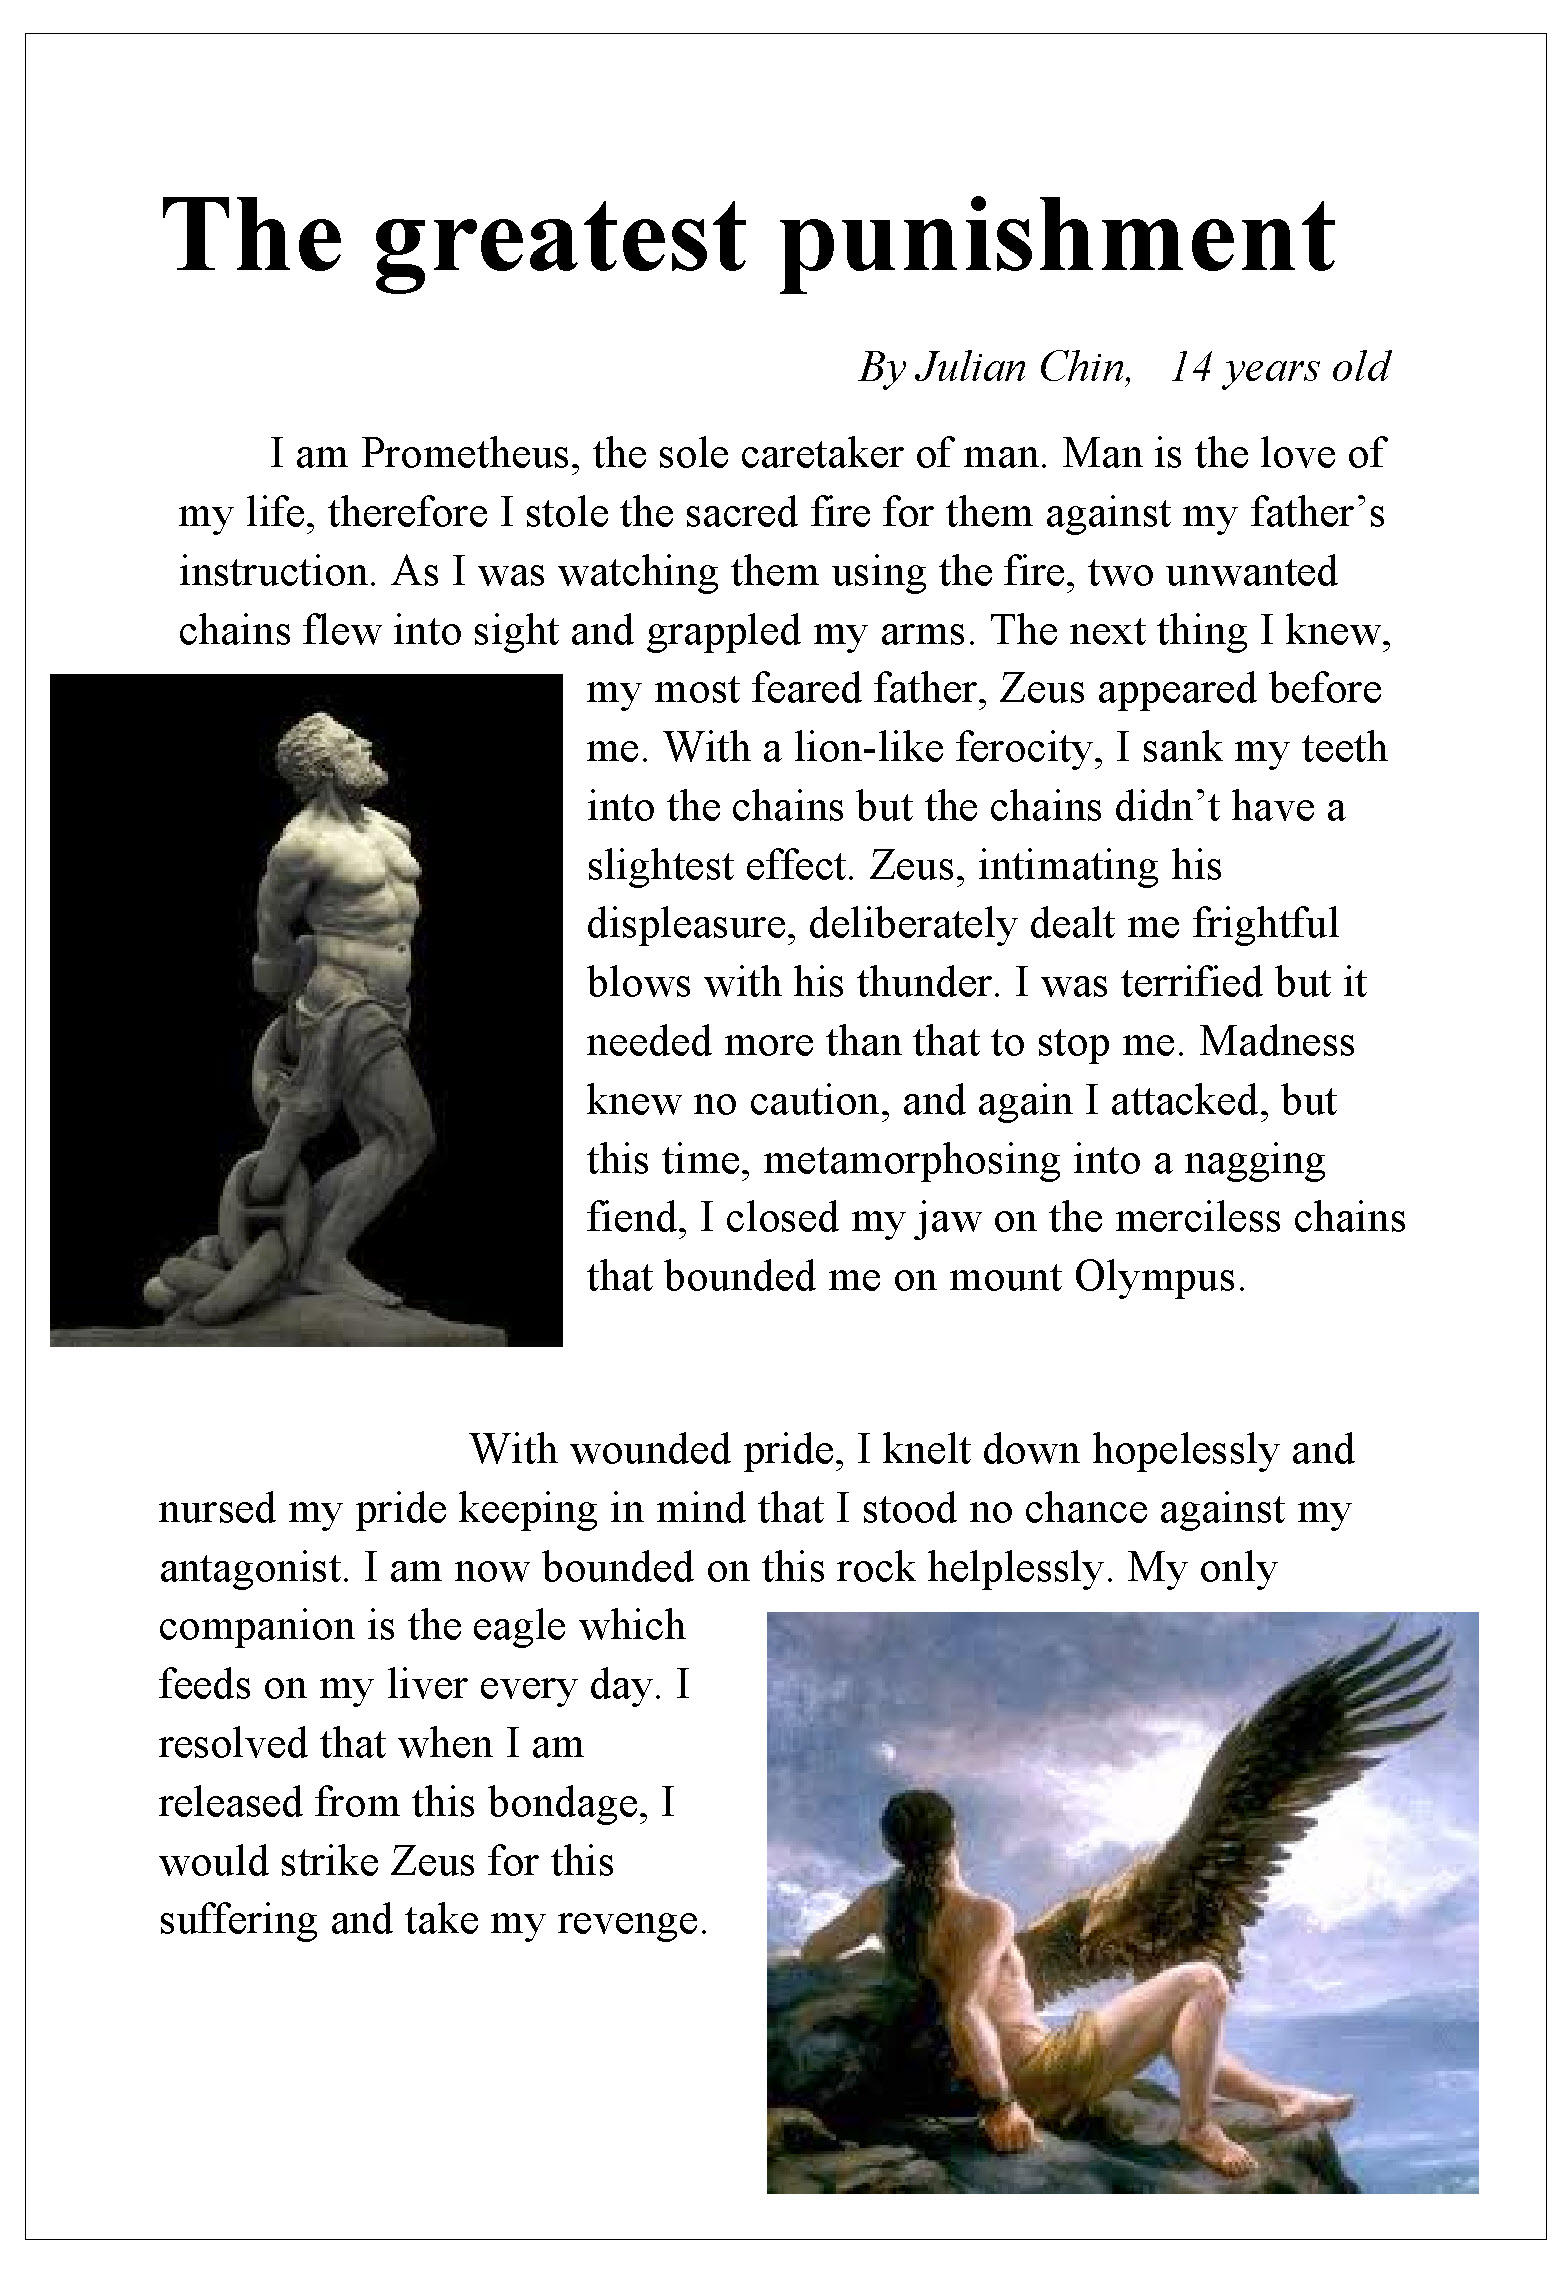 prometheus and zeus essay Basically we have two myths here, each about prometheus the stories basically both agree that prometheus stole fire from zeus and gave it to man against zeus' approval though prometheus is.